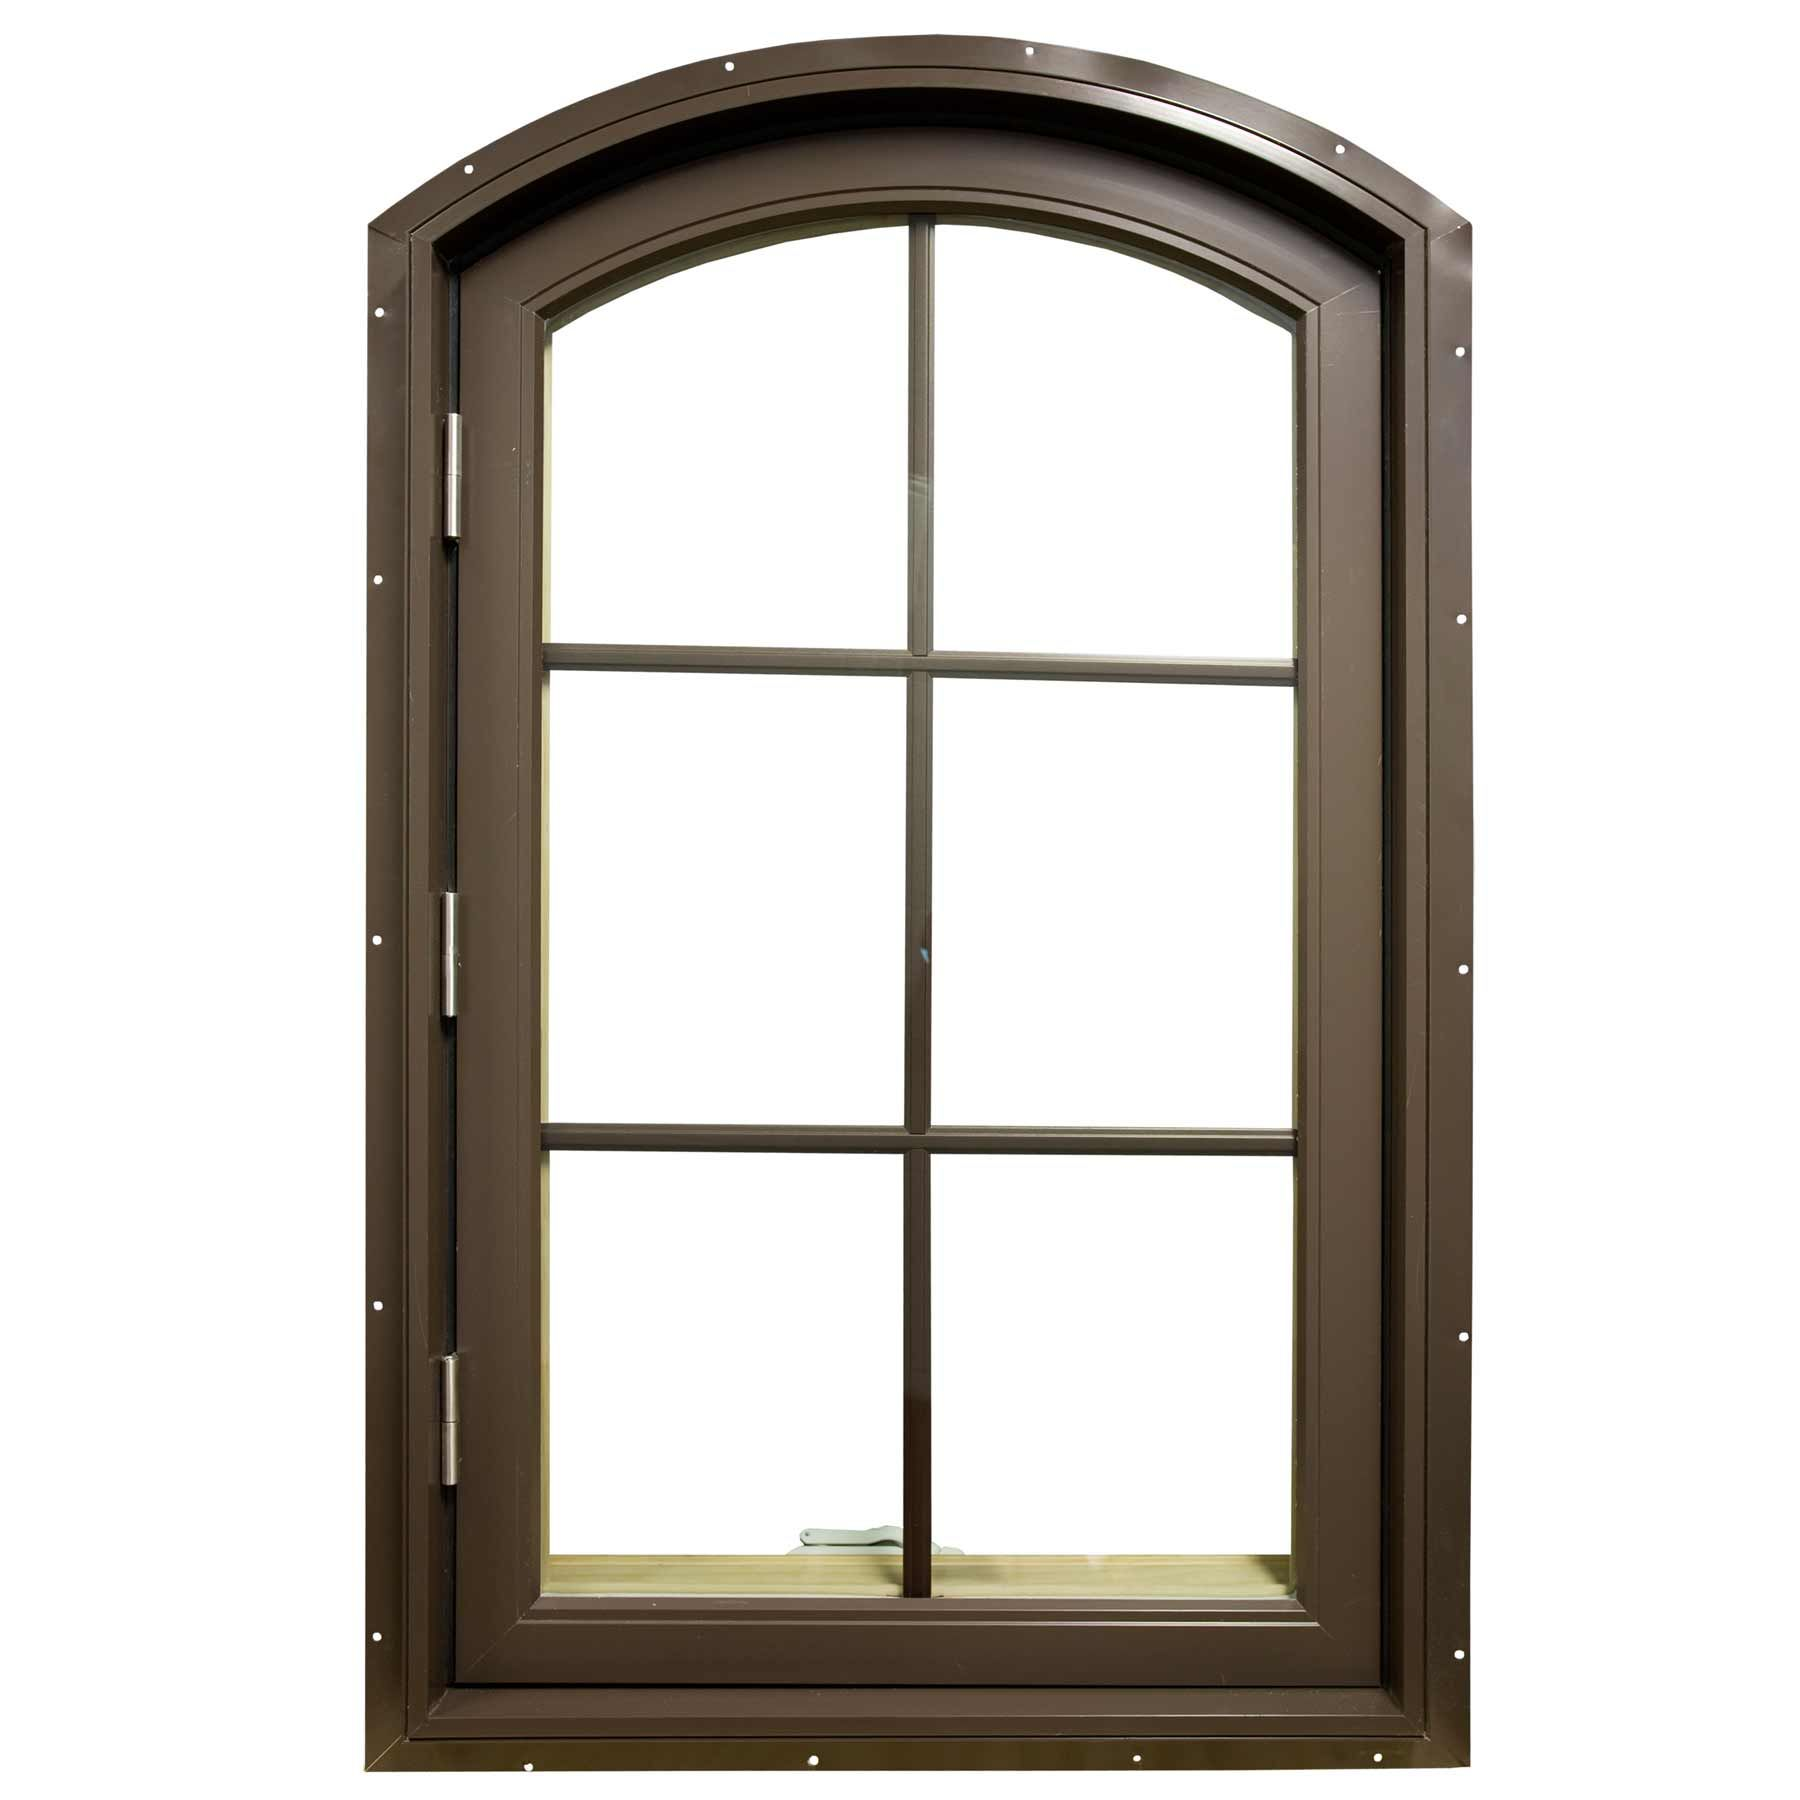 Aluminum casement windows for home feel the home for House doors with windows